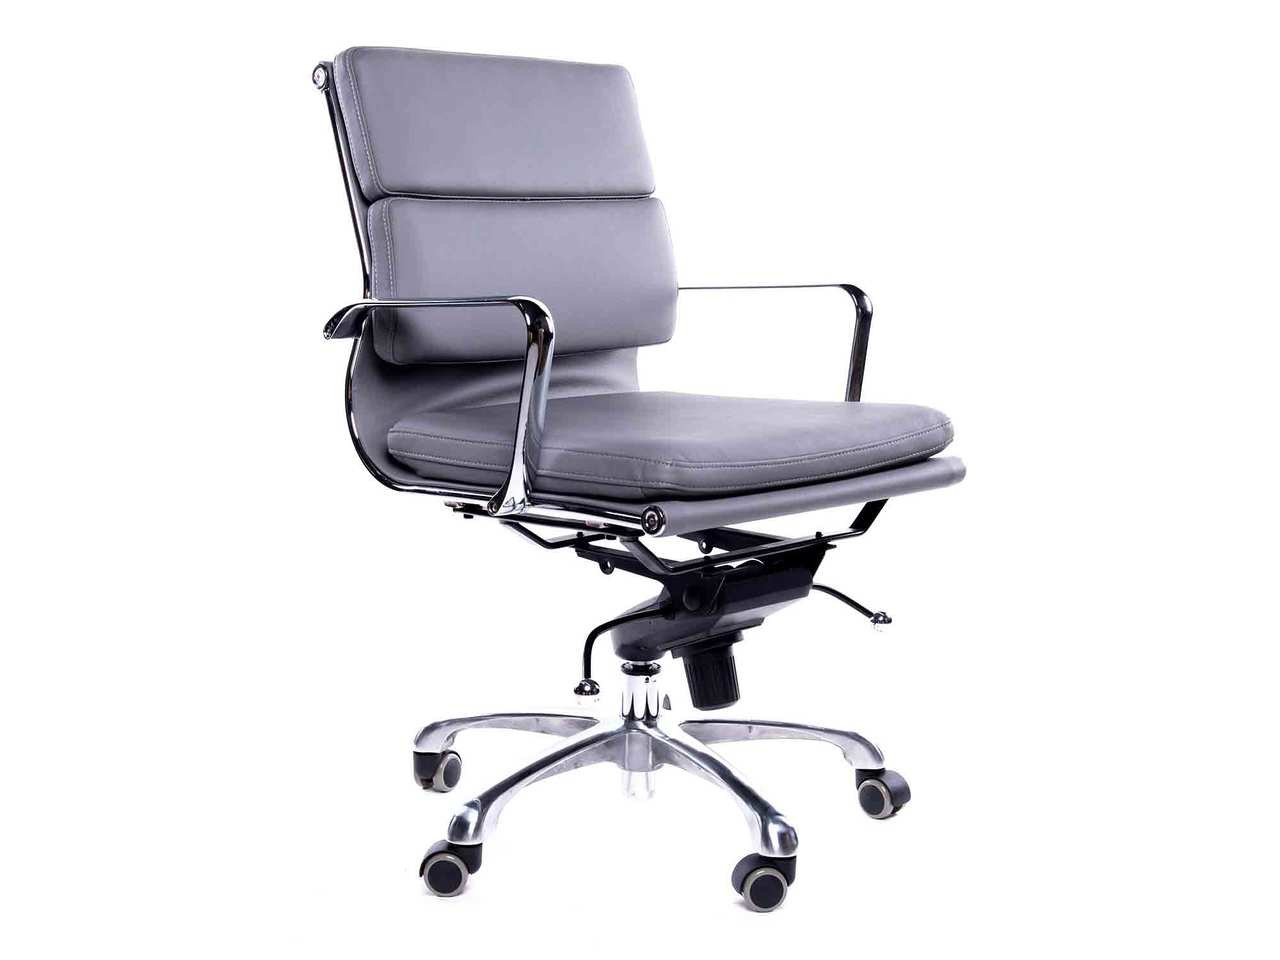 Amazing Ofw Bari Mb Executive Chair Gray Office Furniture Warehouse Pabps2019 Chair Design Images Pabps2019Com